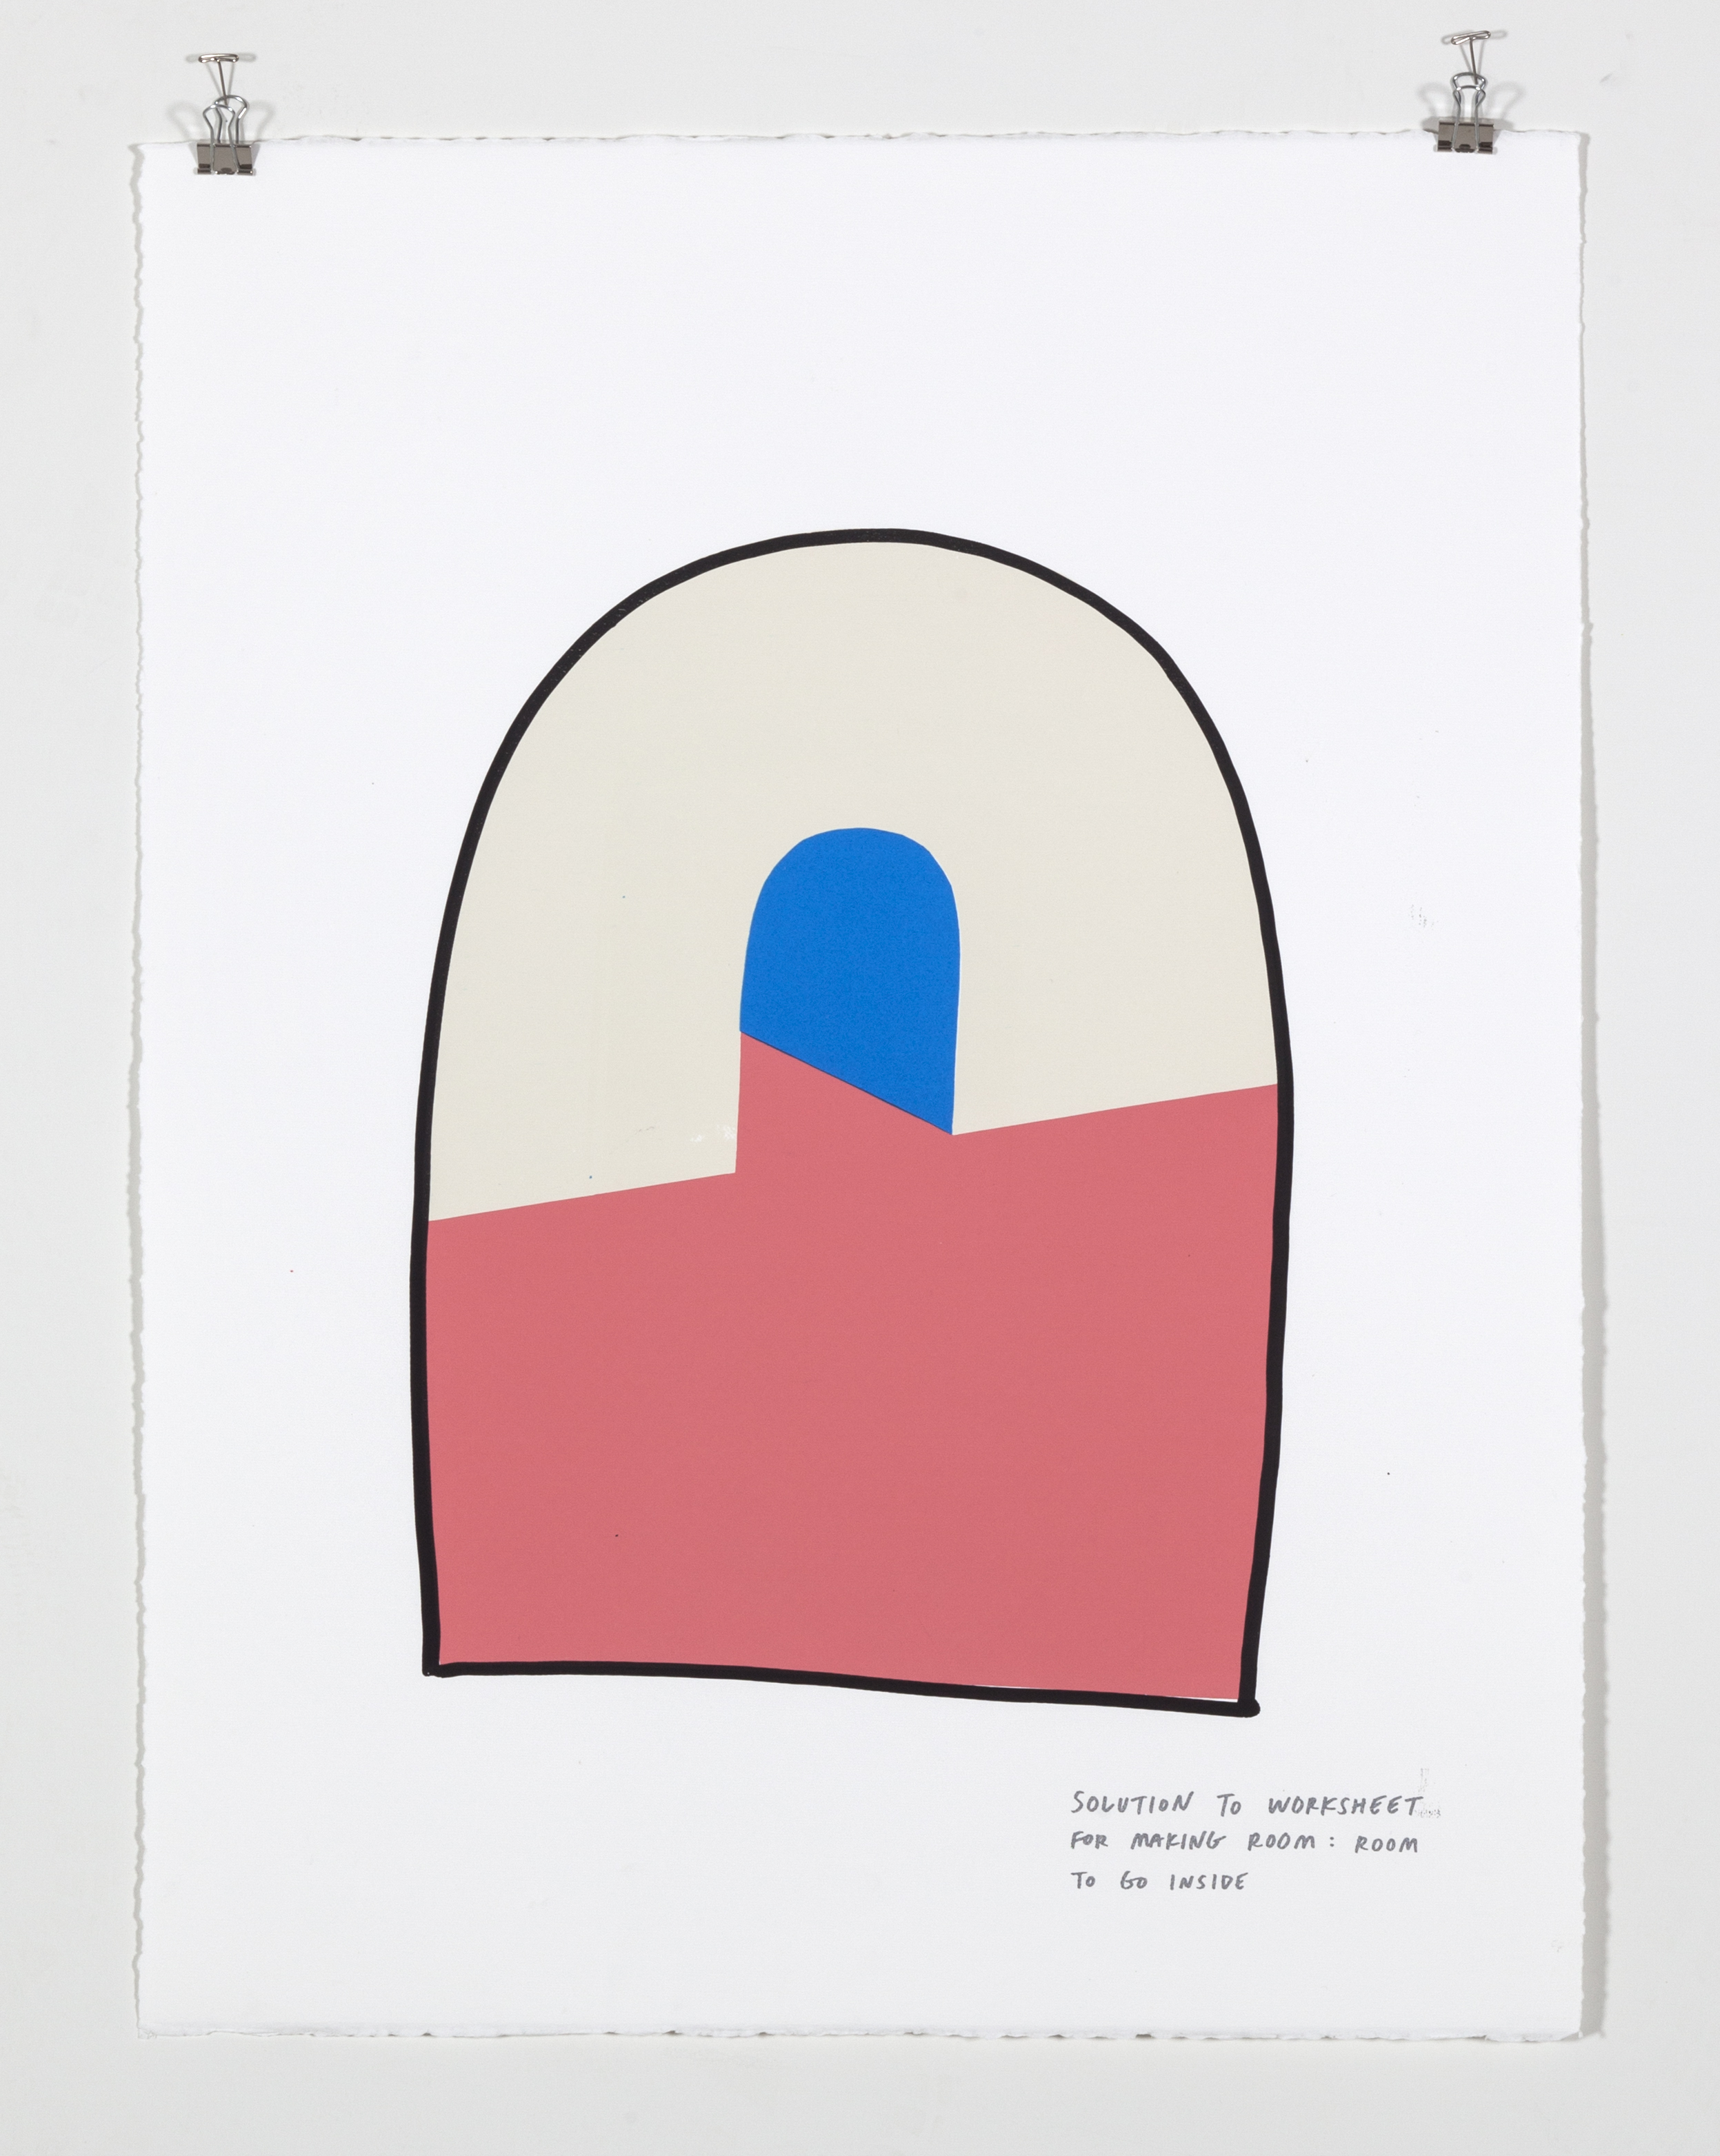 Solution to Worksheet for Making Room: Room to Go Inside,  2018  Five color silkscreen print on paper 19 7/8 x 25 7/8 inches